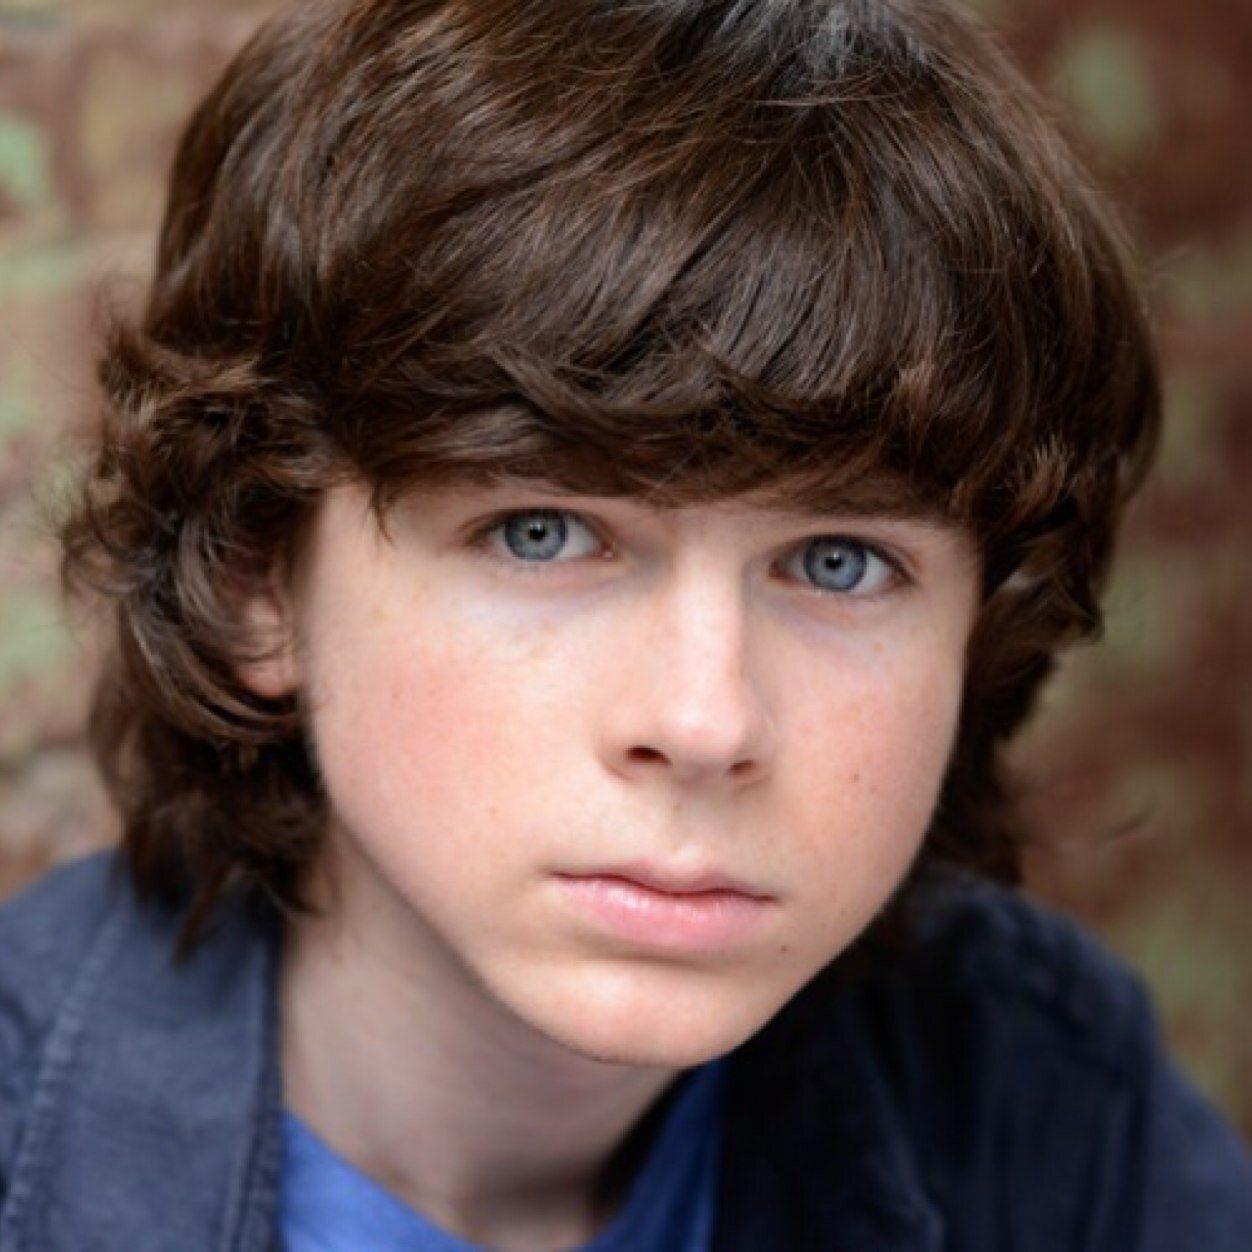 chandler riggs 2016chandler riggs instagram, chandler riggs height, chandler riggs 2017, chandler riggs 2016, chandler riggs vk, chandler riggs and andrew lincoln, chandler riggs snapchat, chandler riggs ask, chandler riggs age, chandler riggs stream, chandler riggs steam, chandler riggs youtube channel, chandler riggs norman reedus, chandler riggs and katelyn nacon, chandler riggs boyu, chandler riggs stunt double, chandler riggs haircut, chandler riggs youtube, chandler riggs carl poppa, chandler riggs league of legends